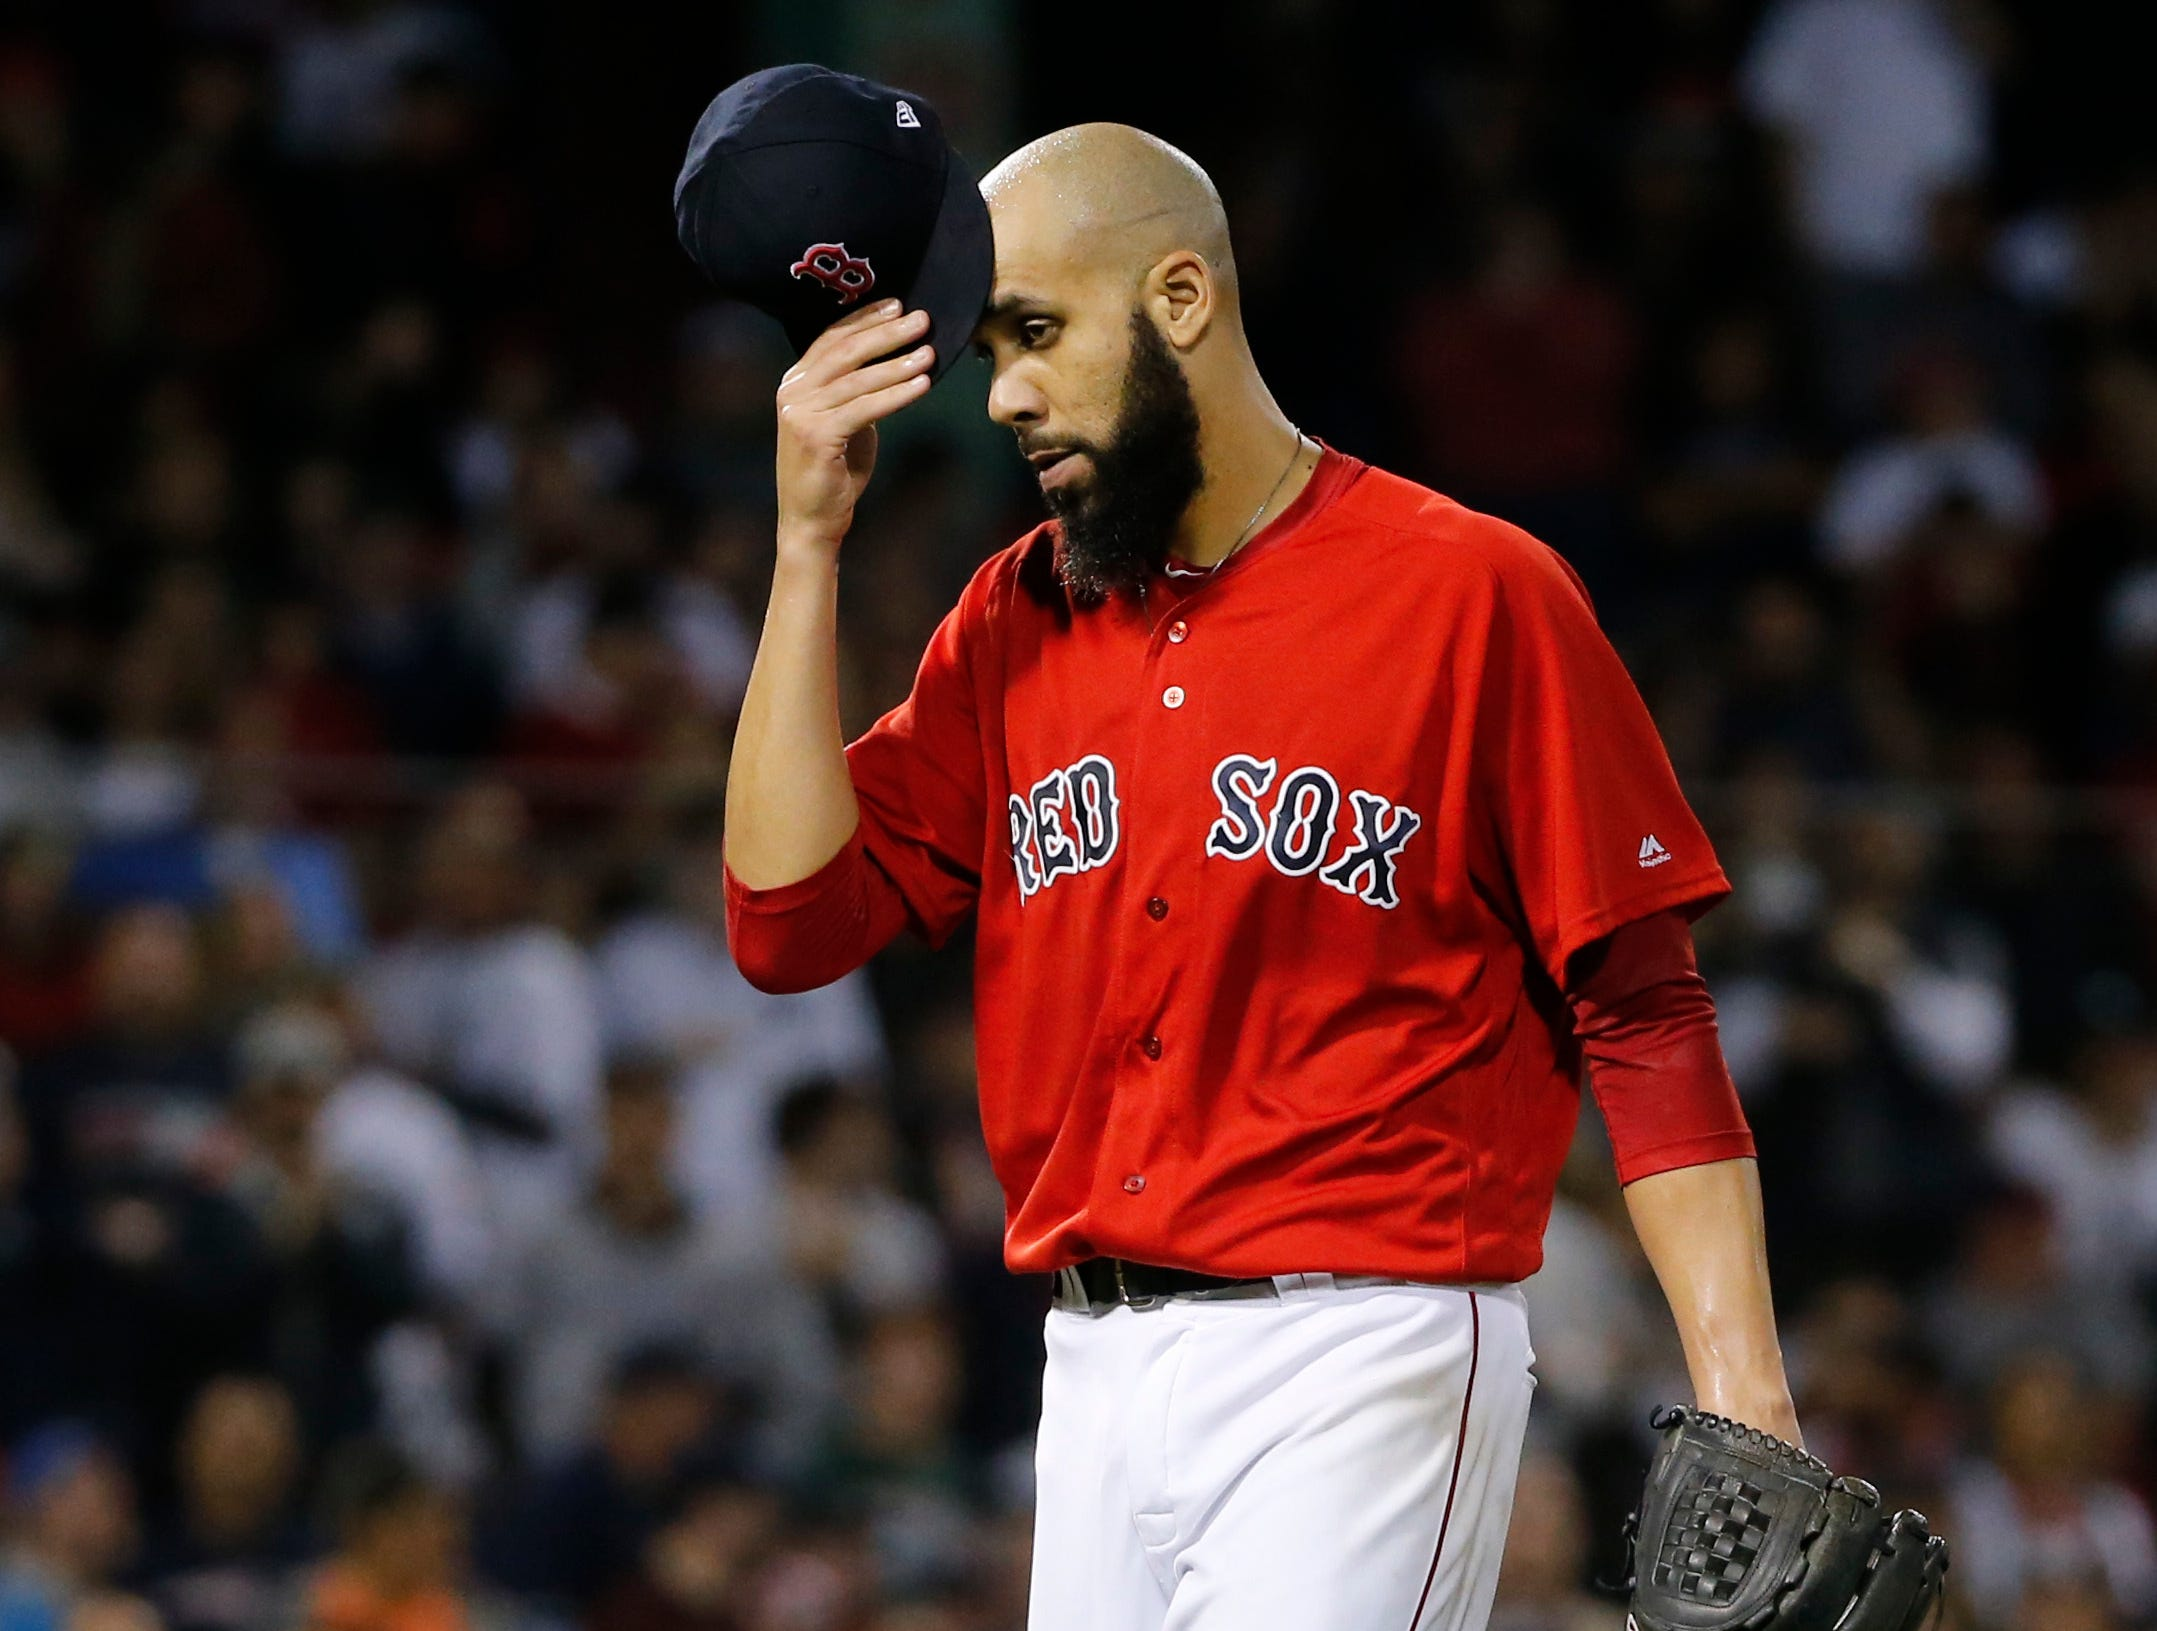 Boston Red Sox starting pitcher David Price is taken out during the second inning of Game 2 of the American League Division Series against the New York Yankees, Saturday, Oct. 6, 2018, in Boston.